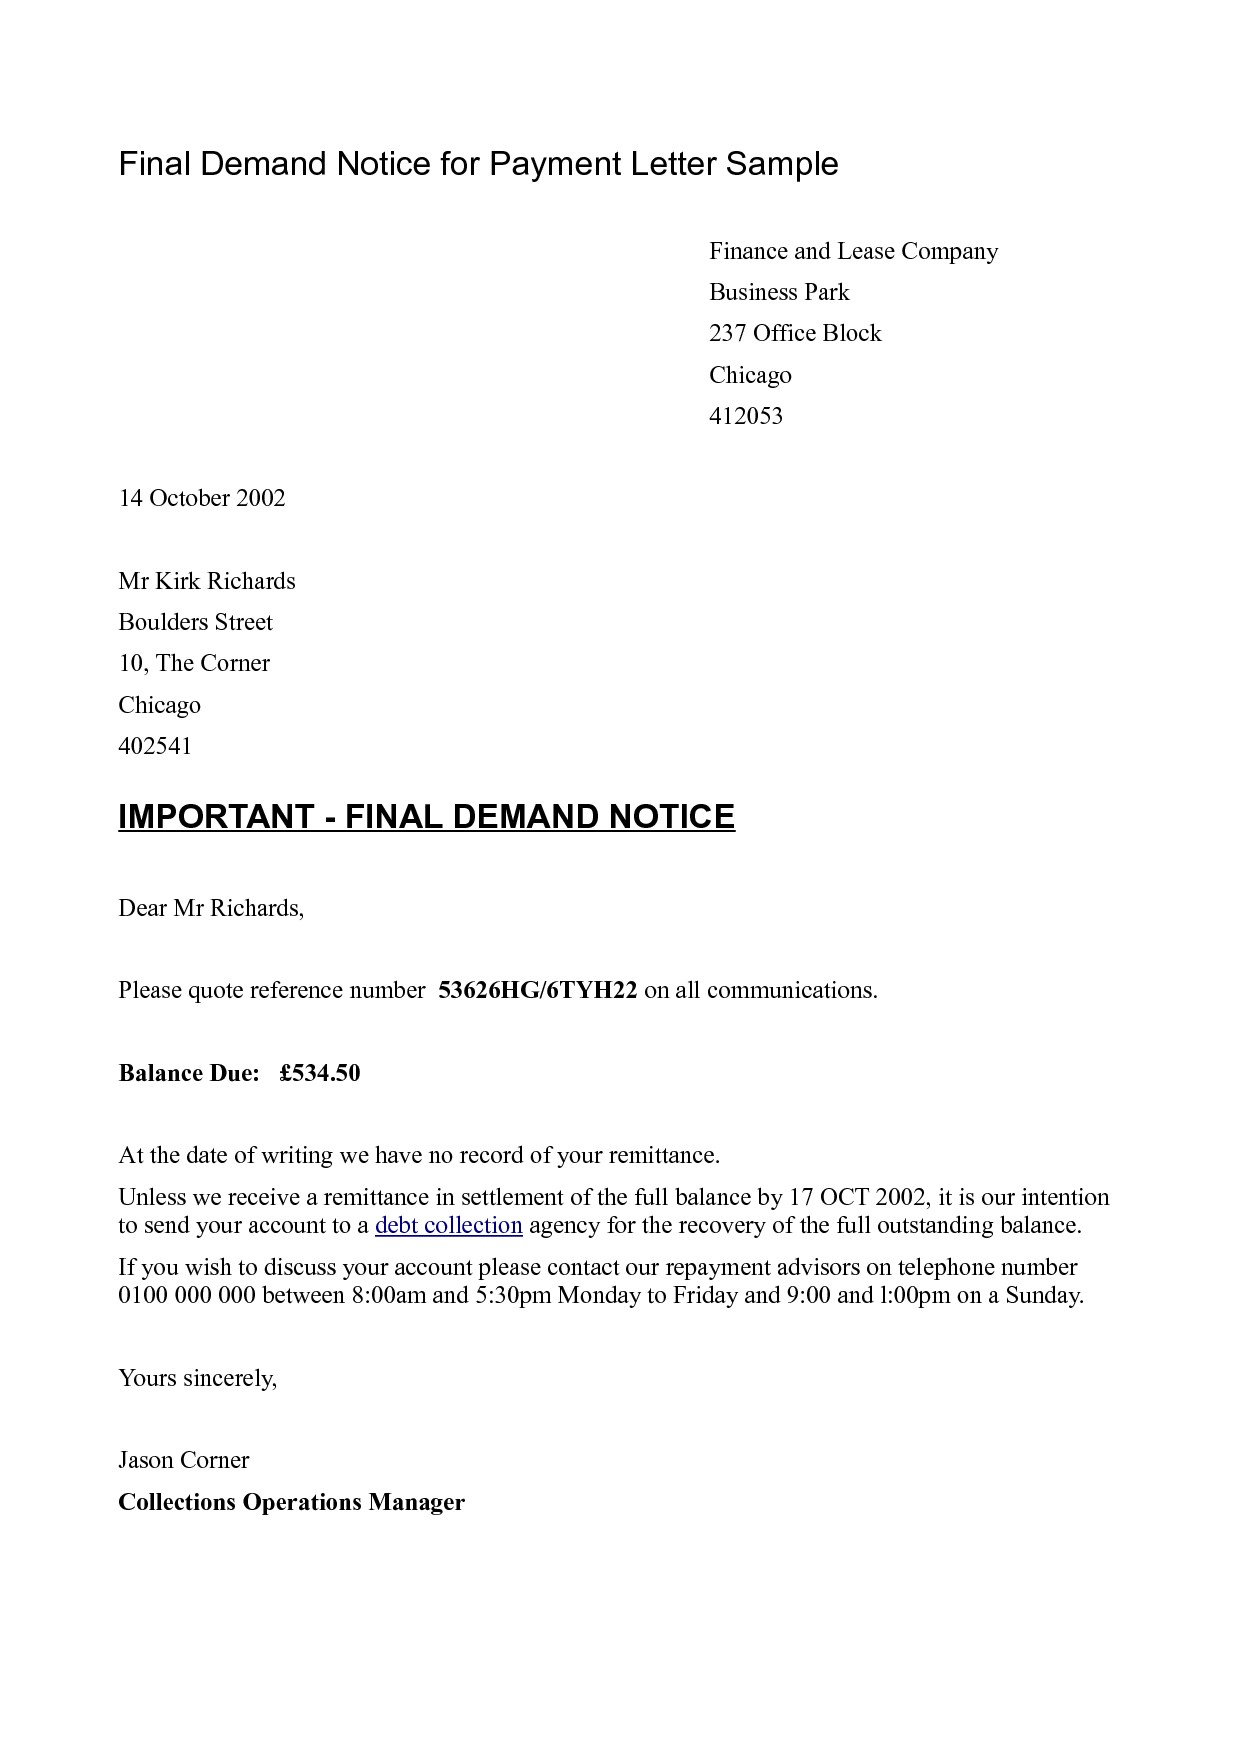 In Full and Final Settlement Letter Template - Business Letter Template Request Payment Final Demand Sample